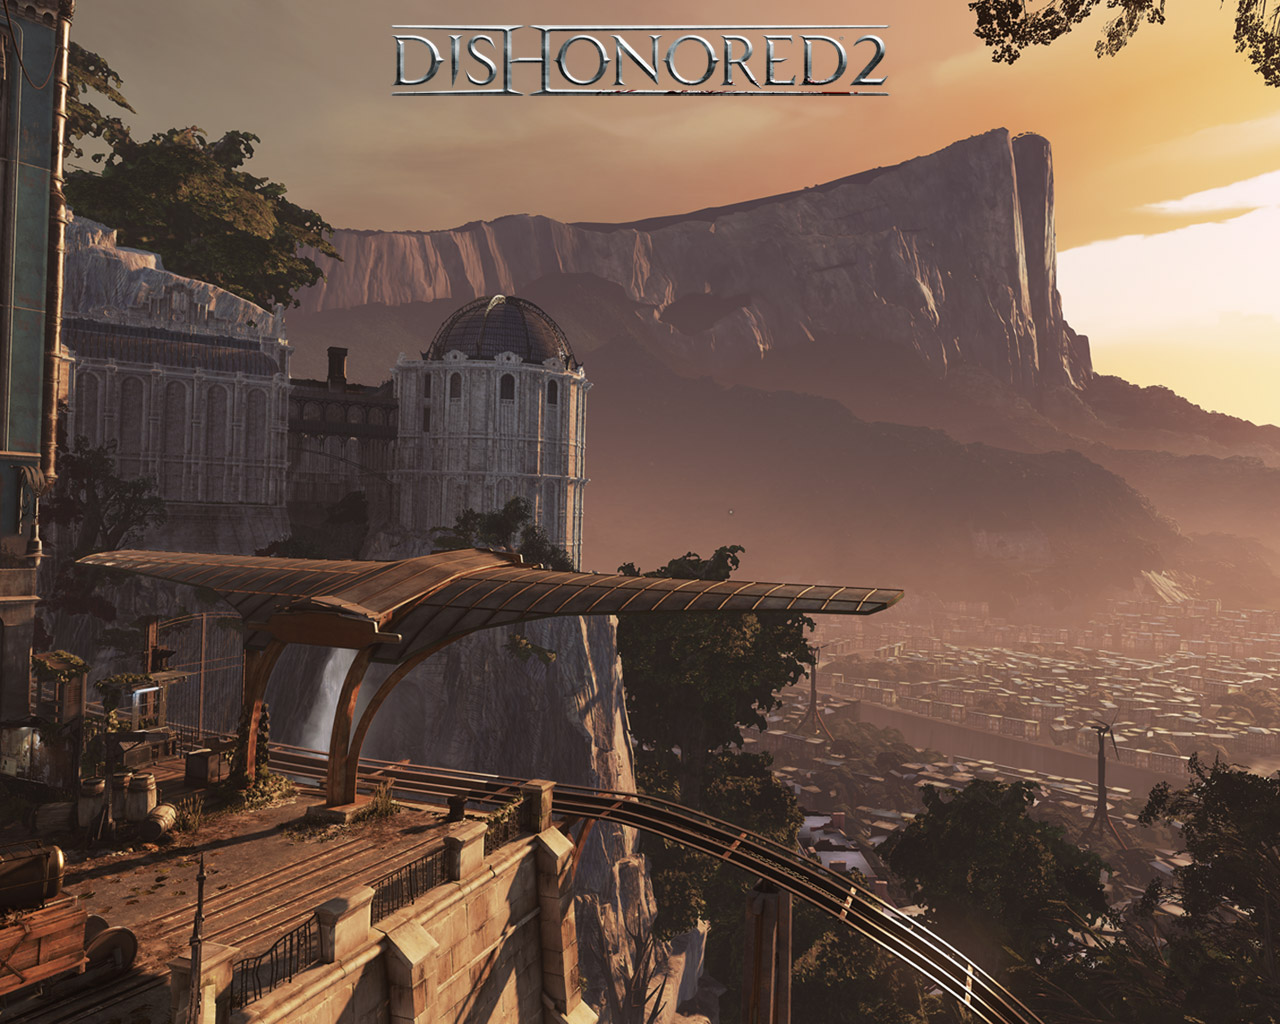 Free Dishonored 2 Wallpaper in 1280x1024